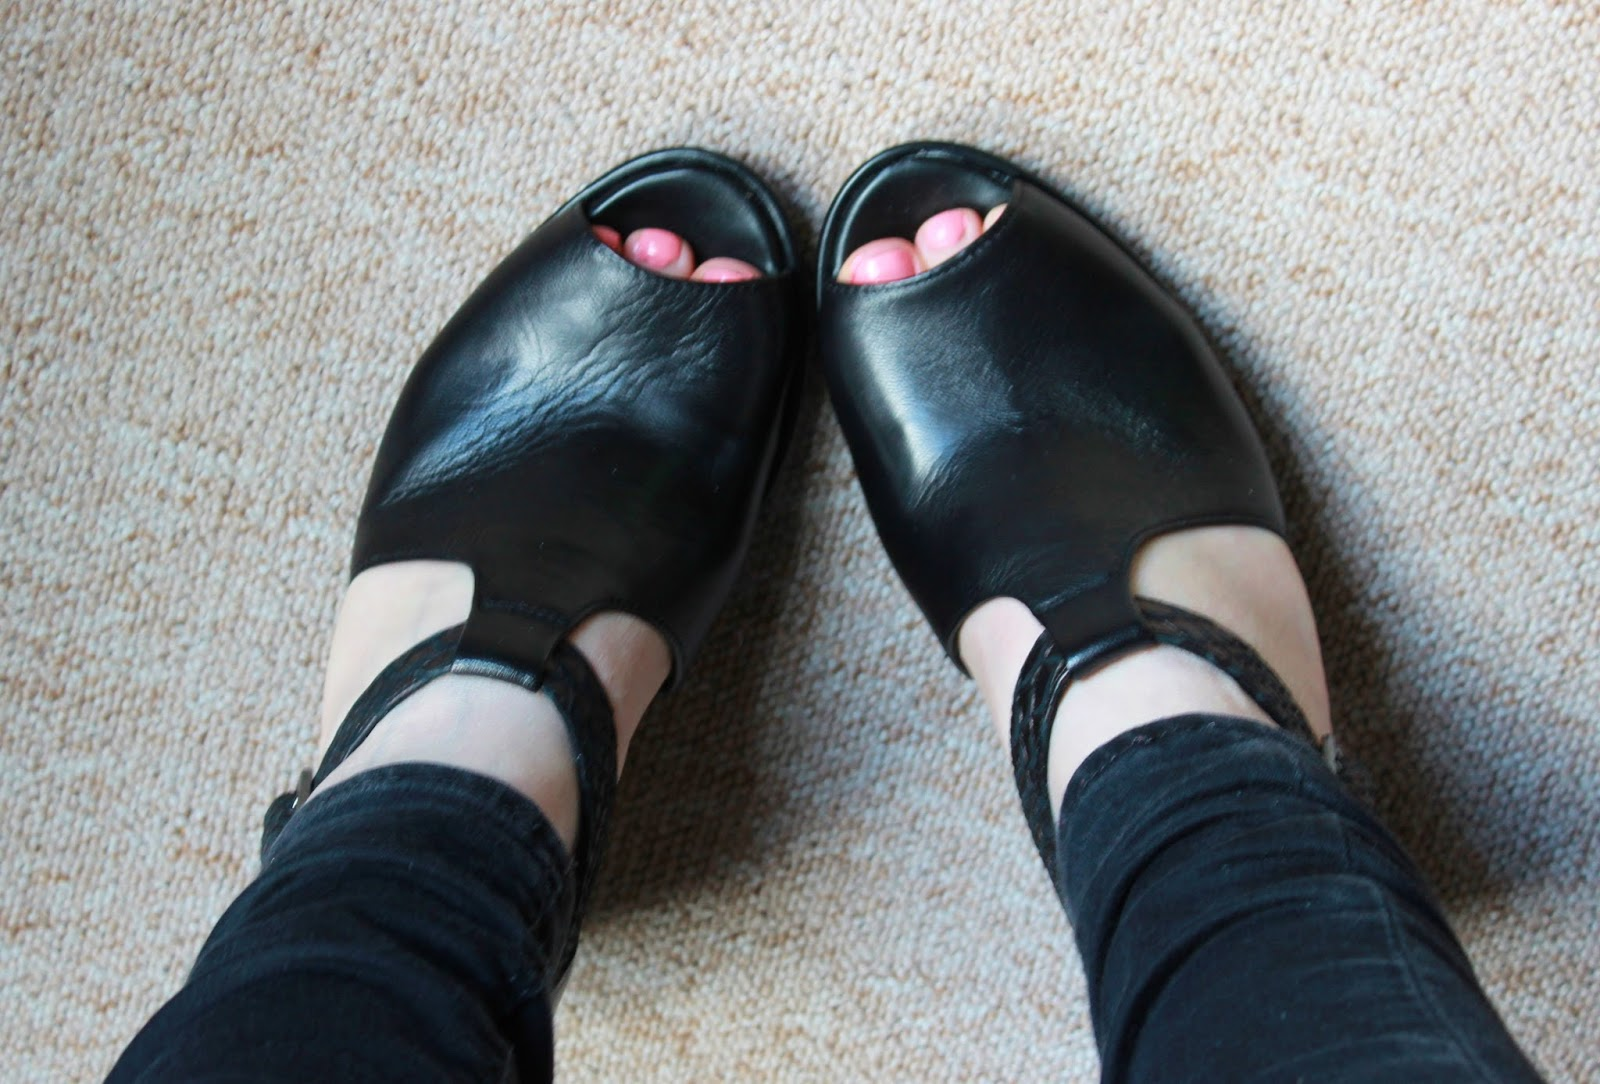 New Clarks Dulcie Meg shoes on feet